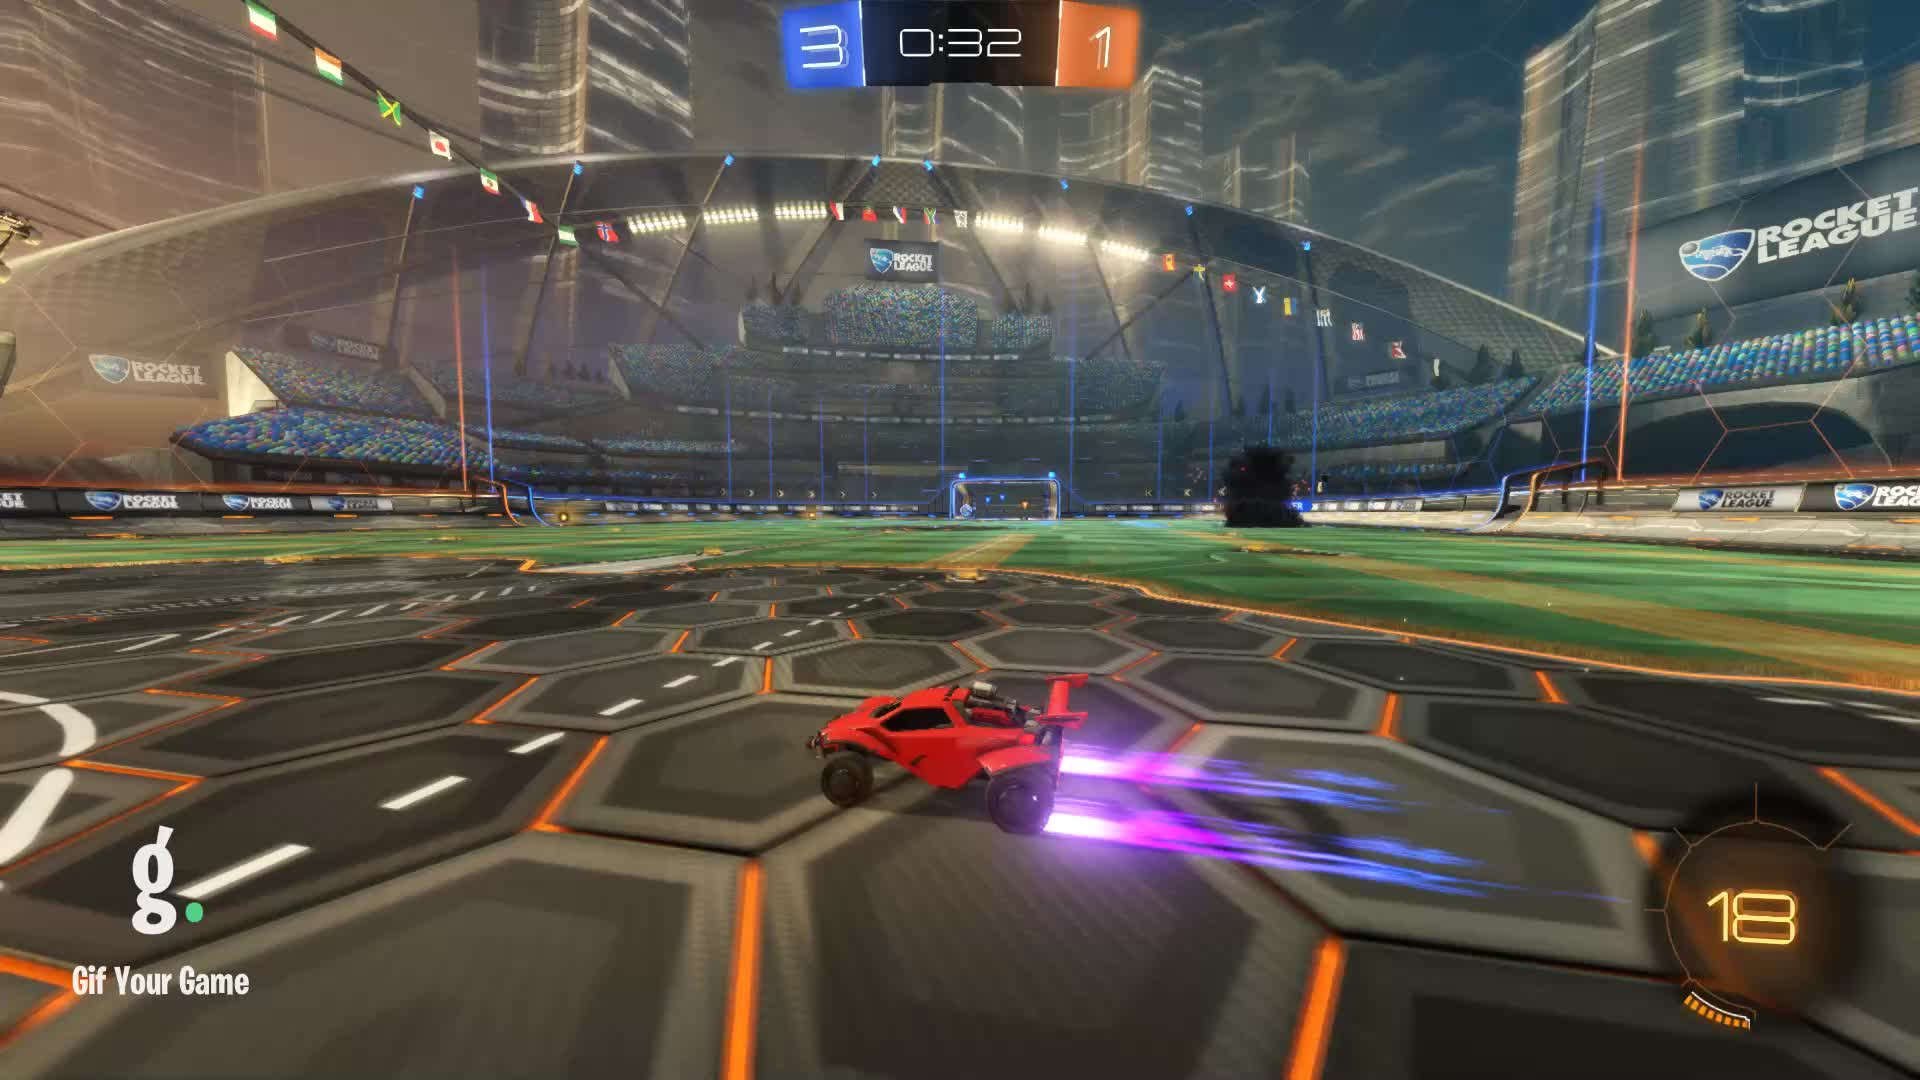 Gif Your Game, GifYourGame, Rabbits, Rocket League, RocketLeague, Assist 4: Rabbits GIFs